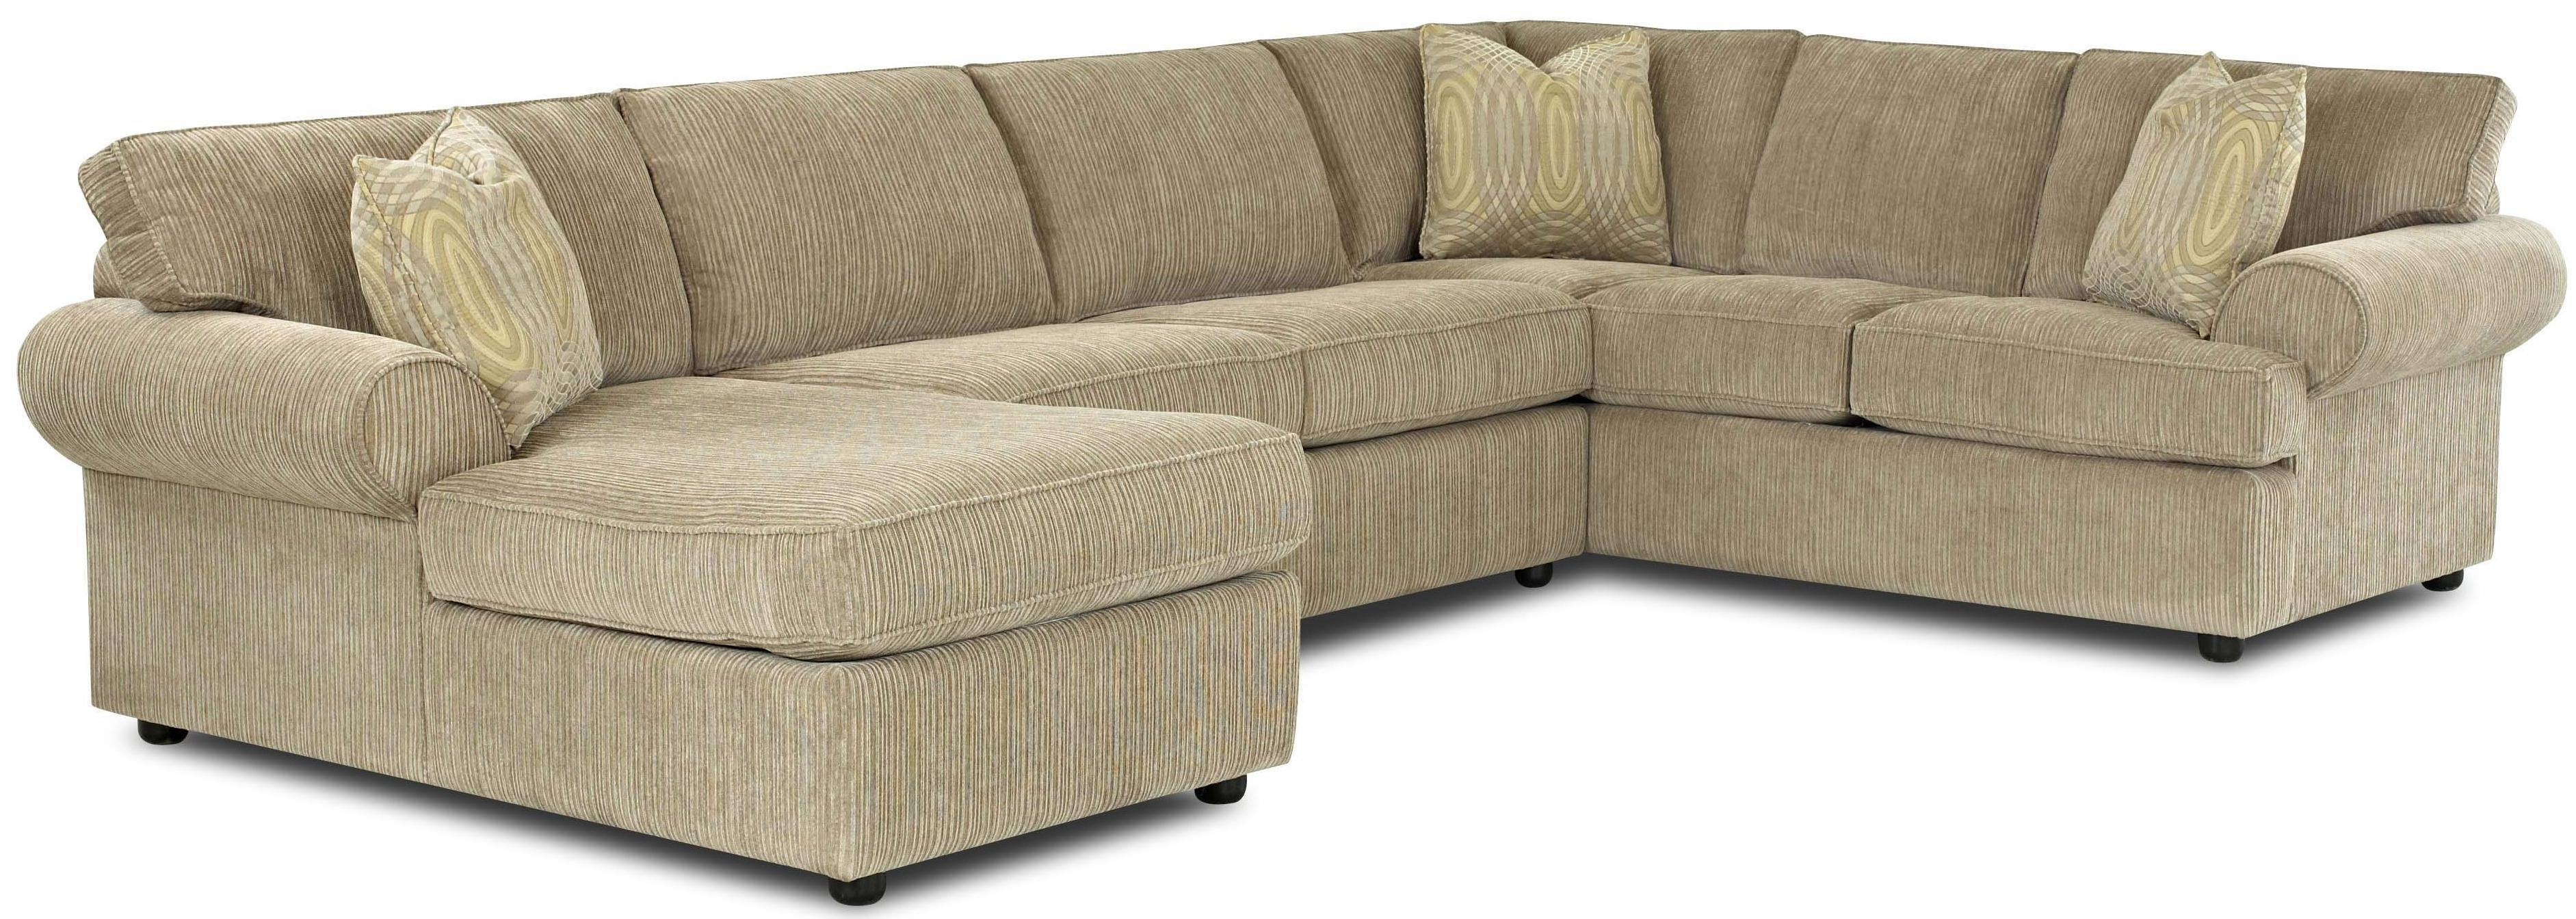 Sofas Center : Beautiful Leather Sectional Sleeper Sofa Photo Regarding Sleeper Recliner Sectional (Image 17 of 20)